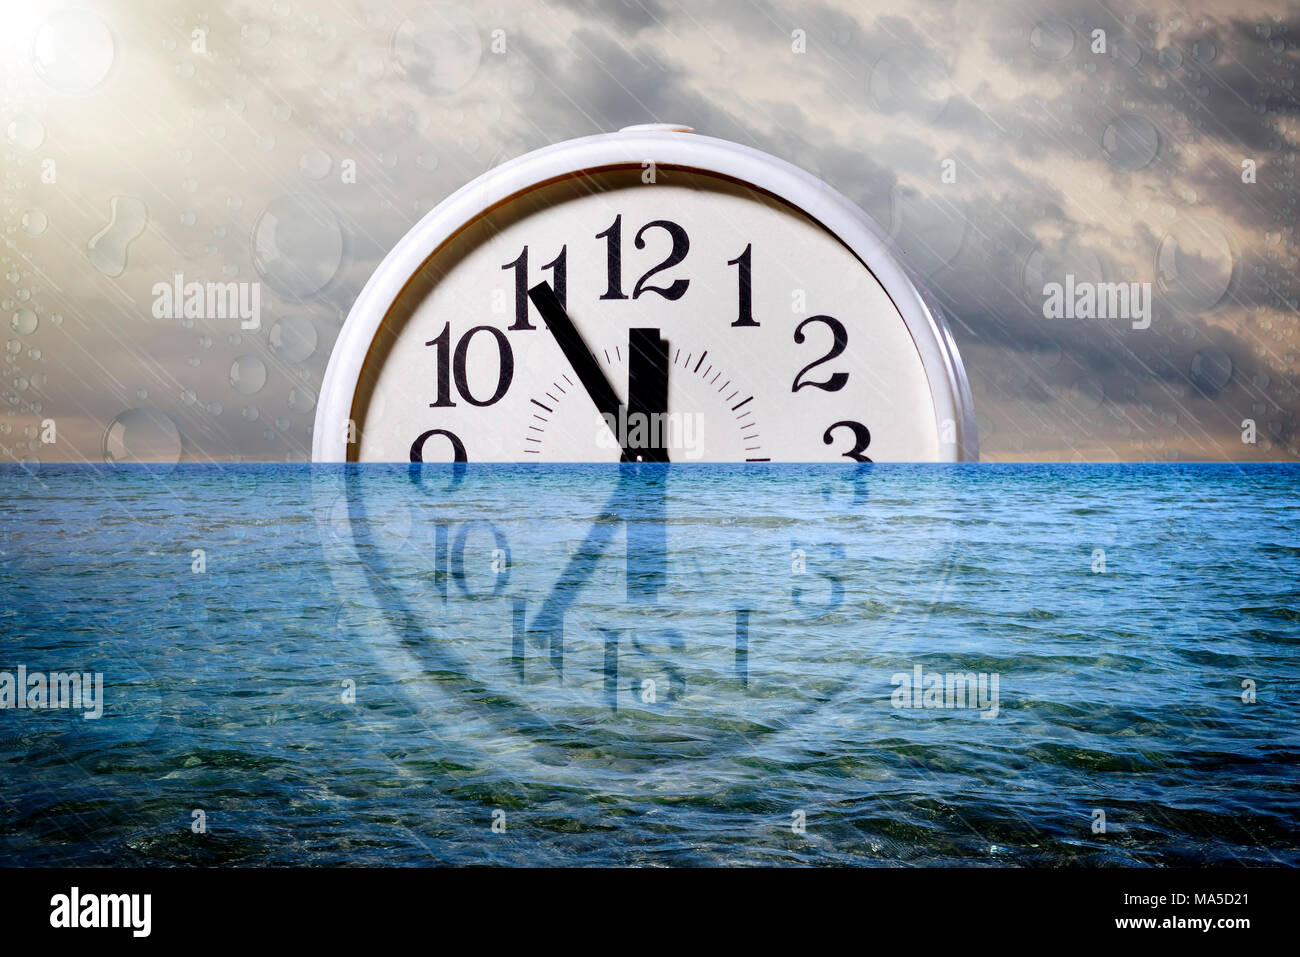 Clock in the water, five to twelve, symbolic picture of climate change - Stock Image